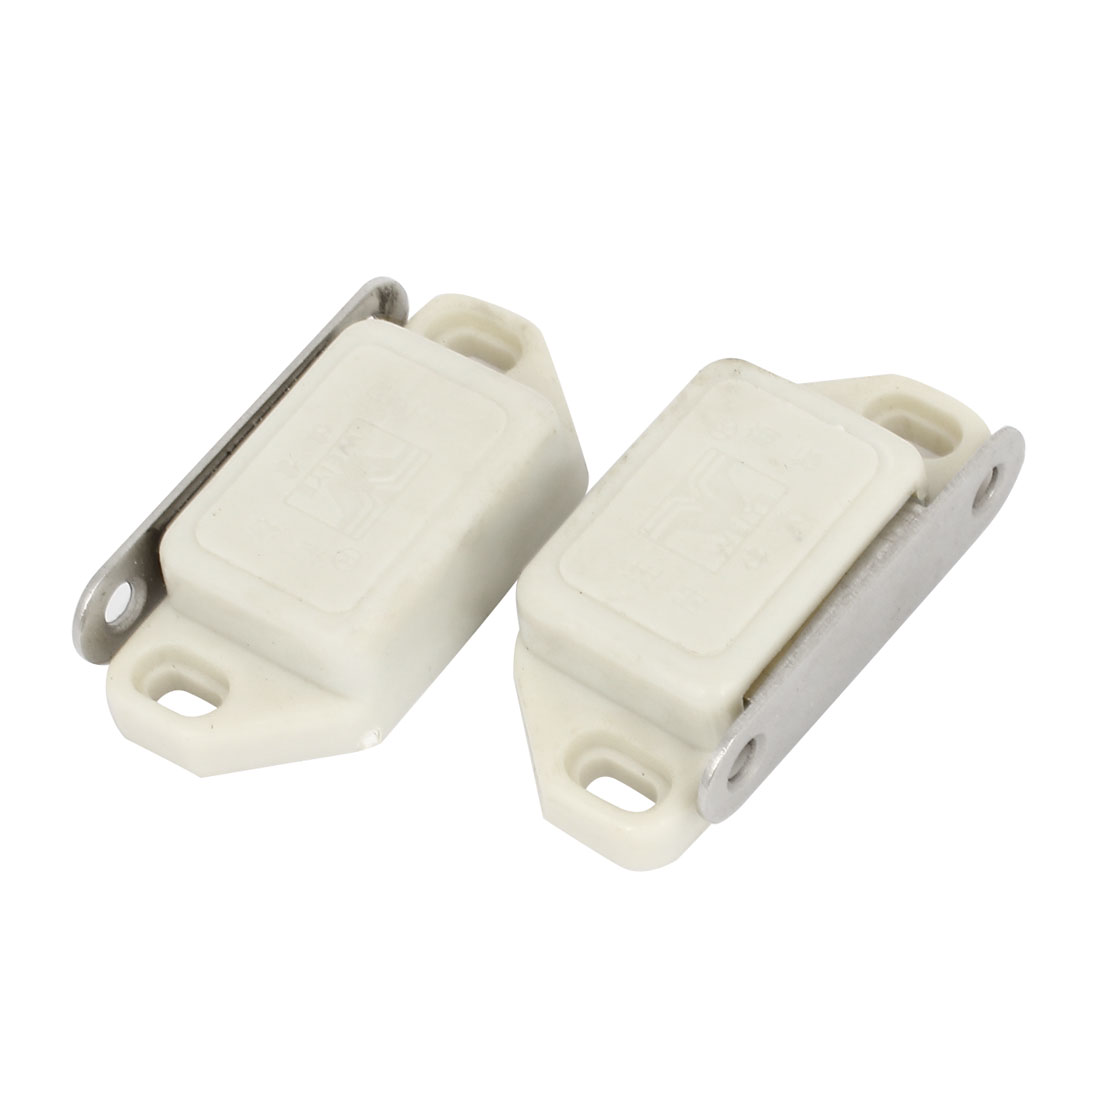 "Cupboard Door Plastic Shell Magnetic Catch Latch 2.2"" Length 2PCS"